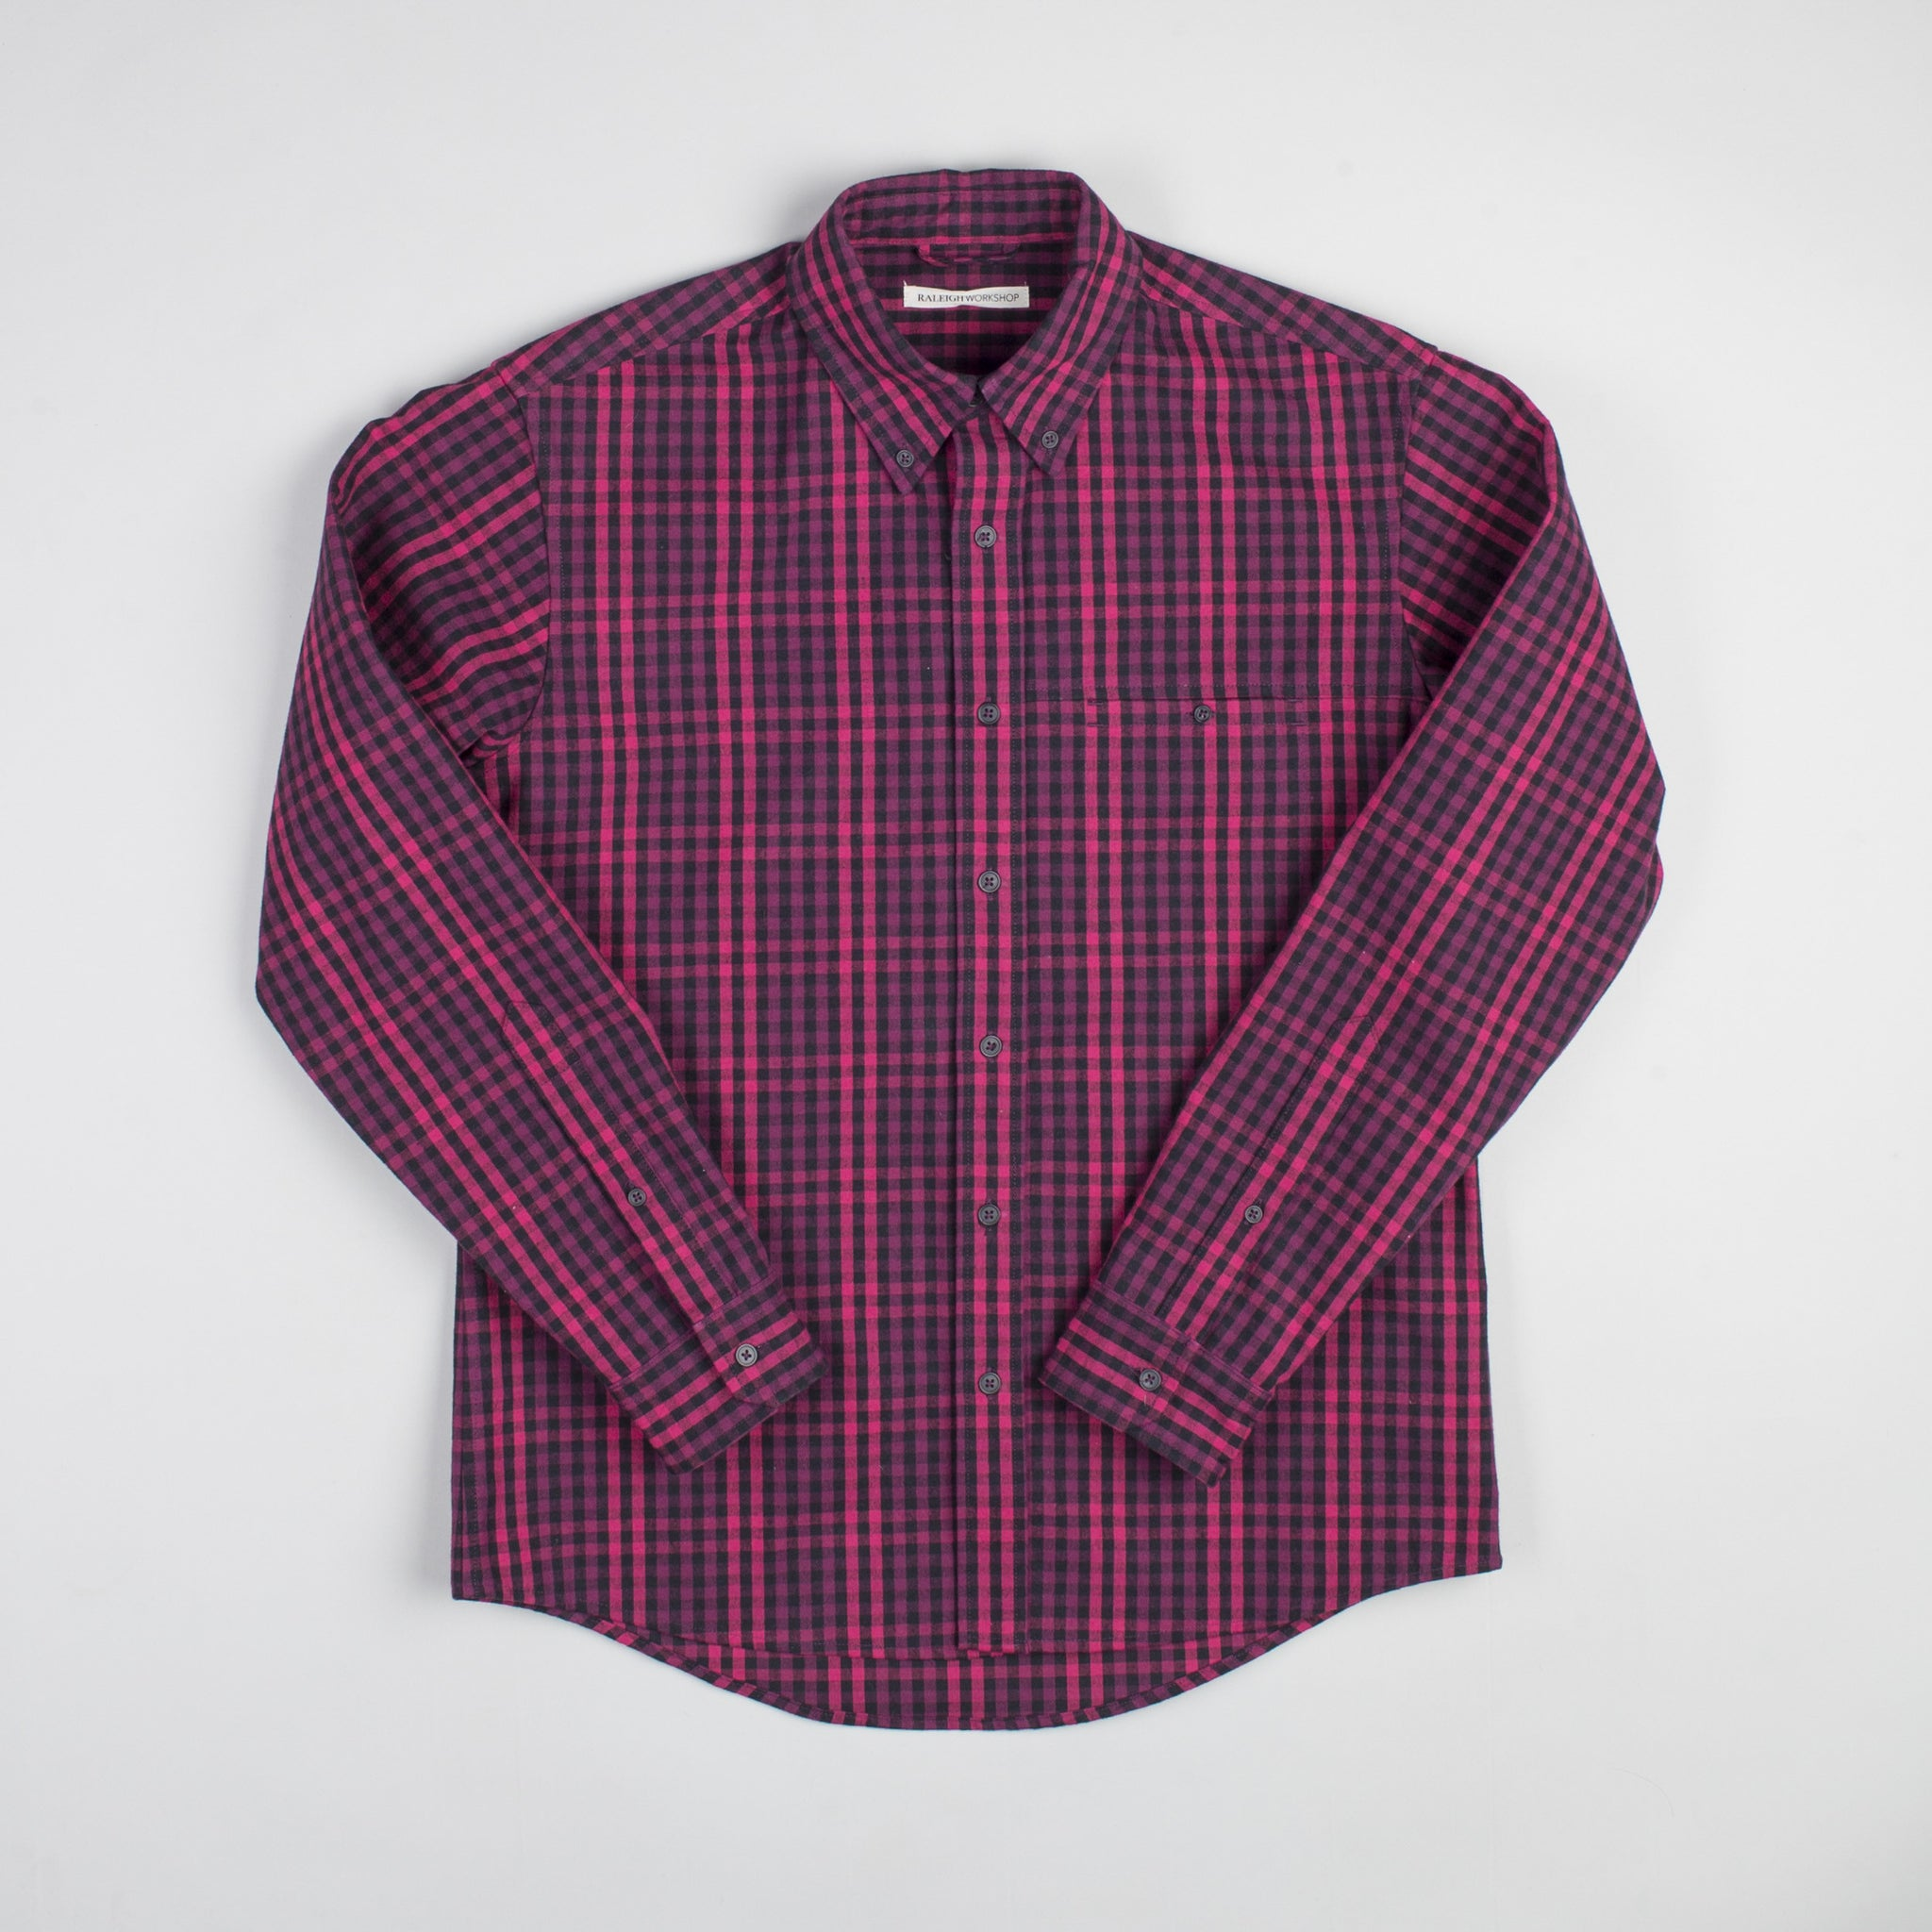 angle hover: hot pink check  Raleigh Denim Workshop Welt-Pocket Button-up men's shirt in red and hot pink check, front.